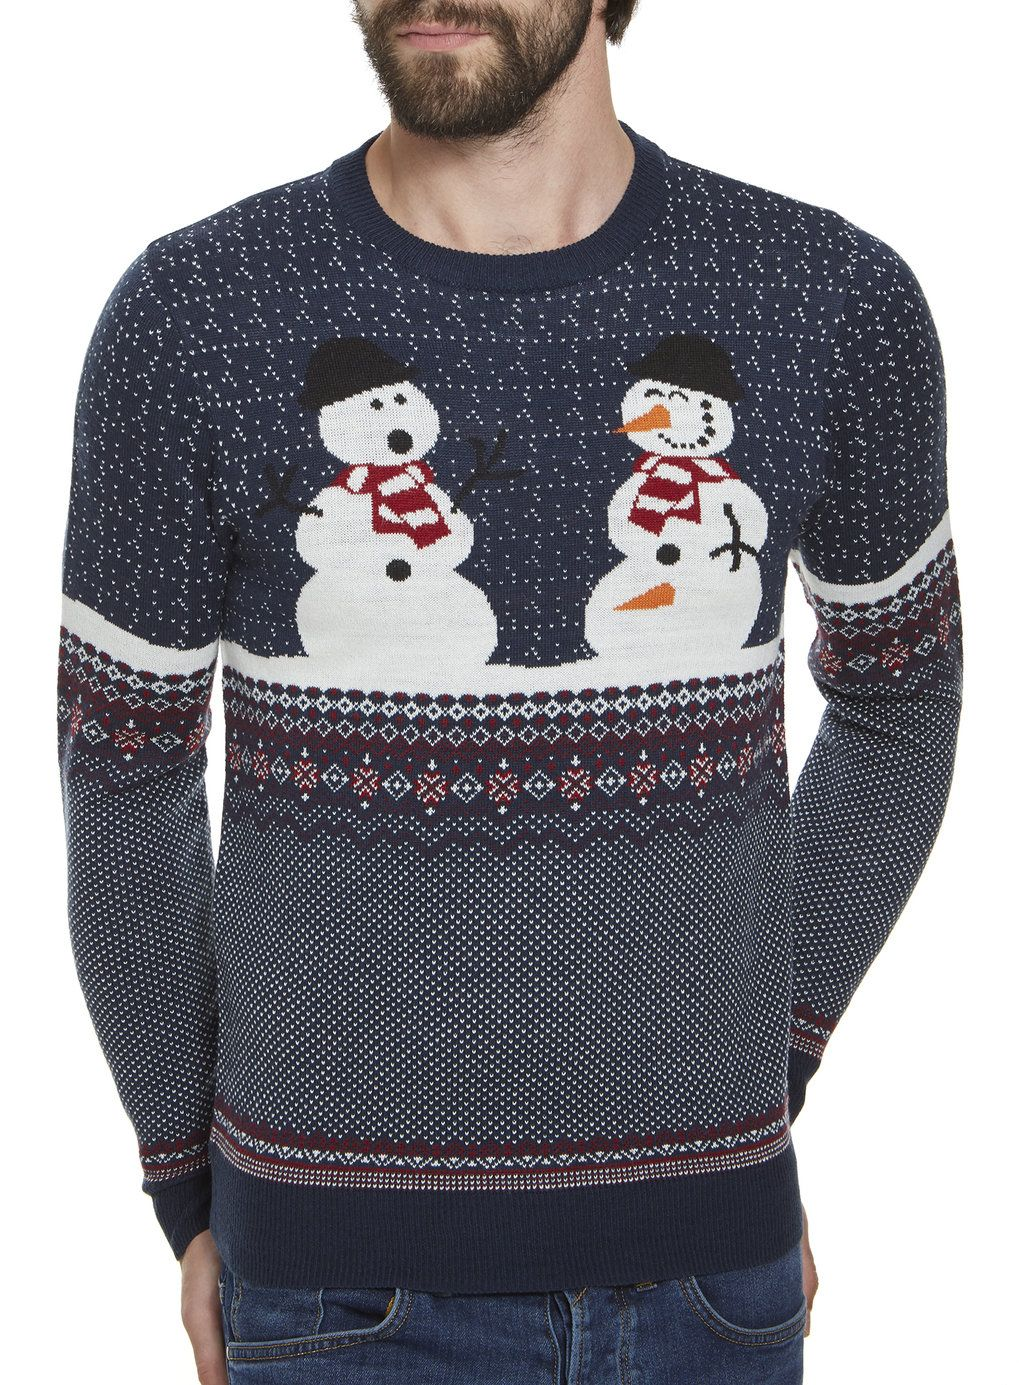 Our Navy Naughty Snowmen Christmas just arrived online